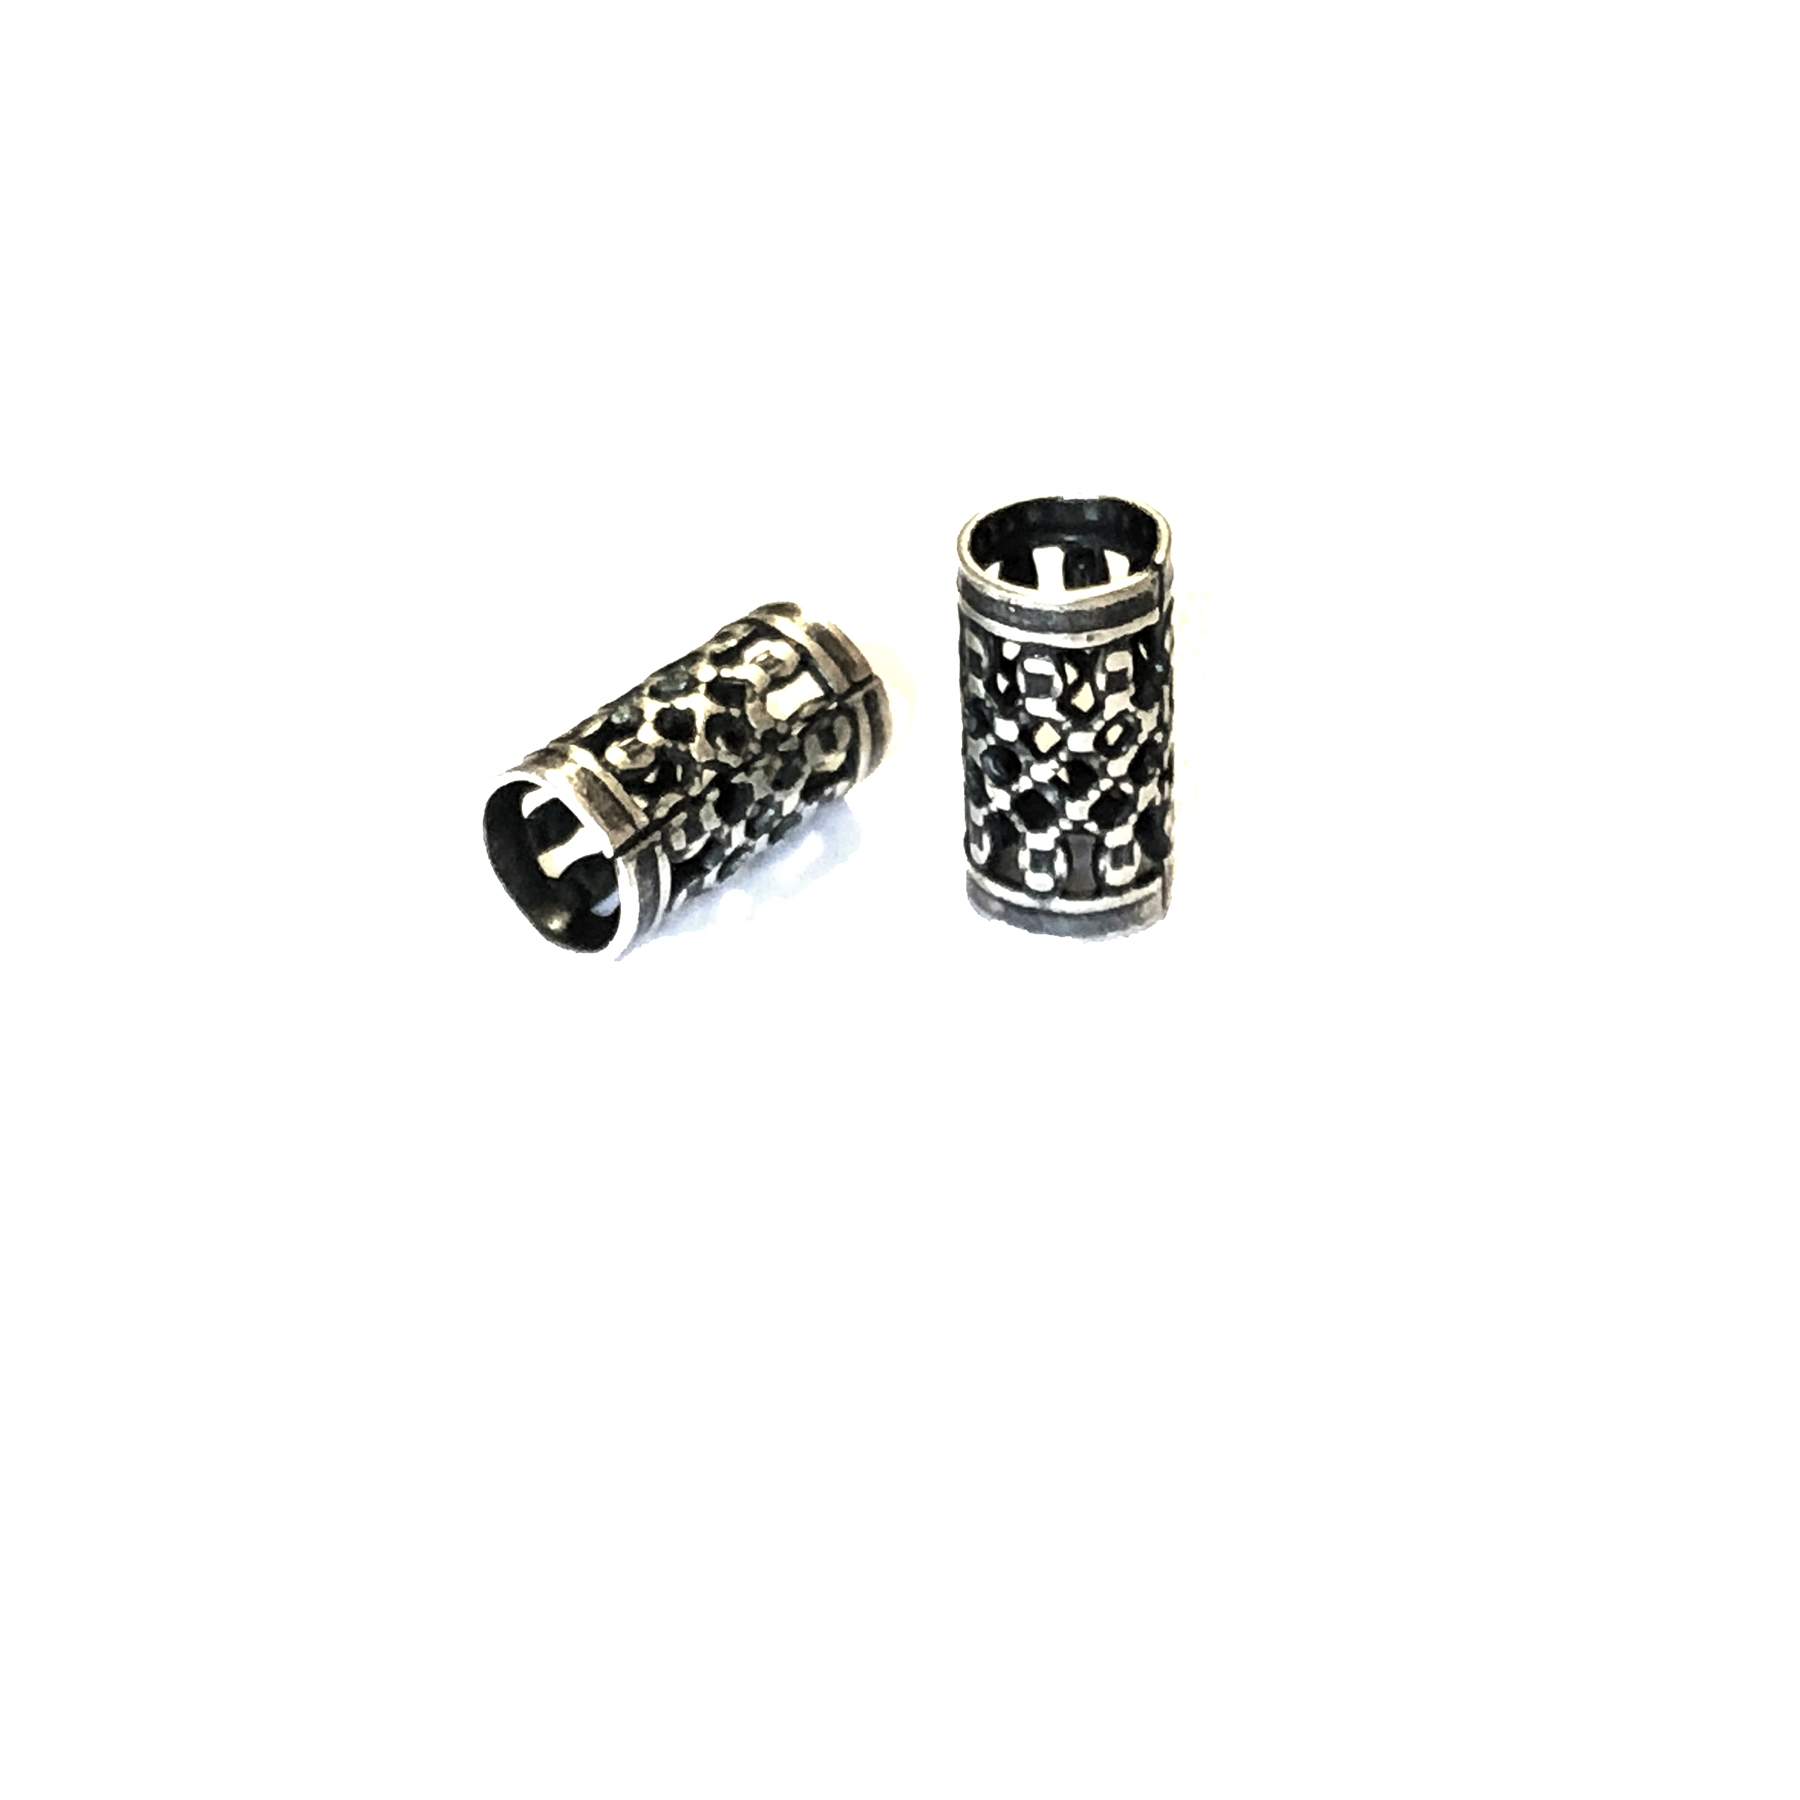 filigree tube beads, filigree beads, jewelry making, 0709, brass bead, filigree beads, brass metal beads, silverware silver plate beads, designer findings, designer beads, steampunk art jewelry, beading supplies, vintage jewelry supplies,